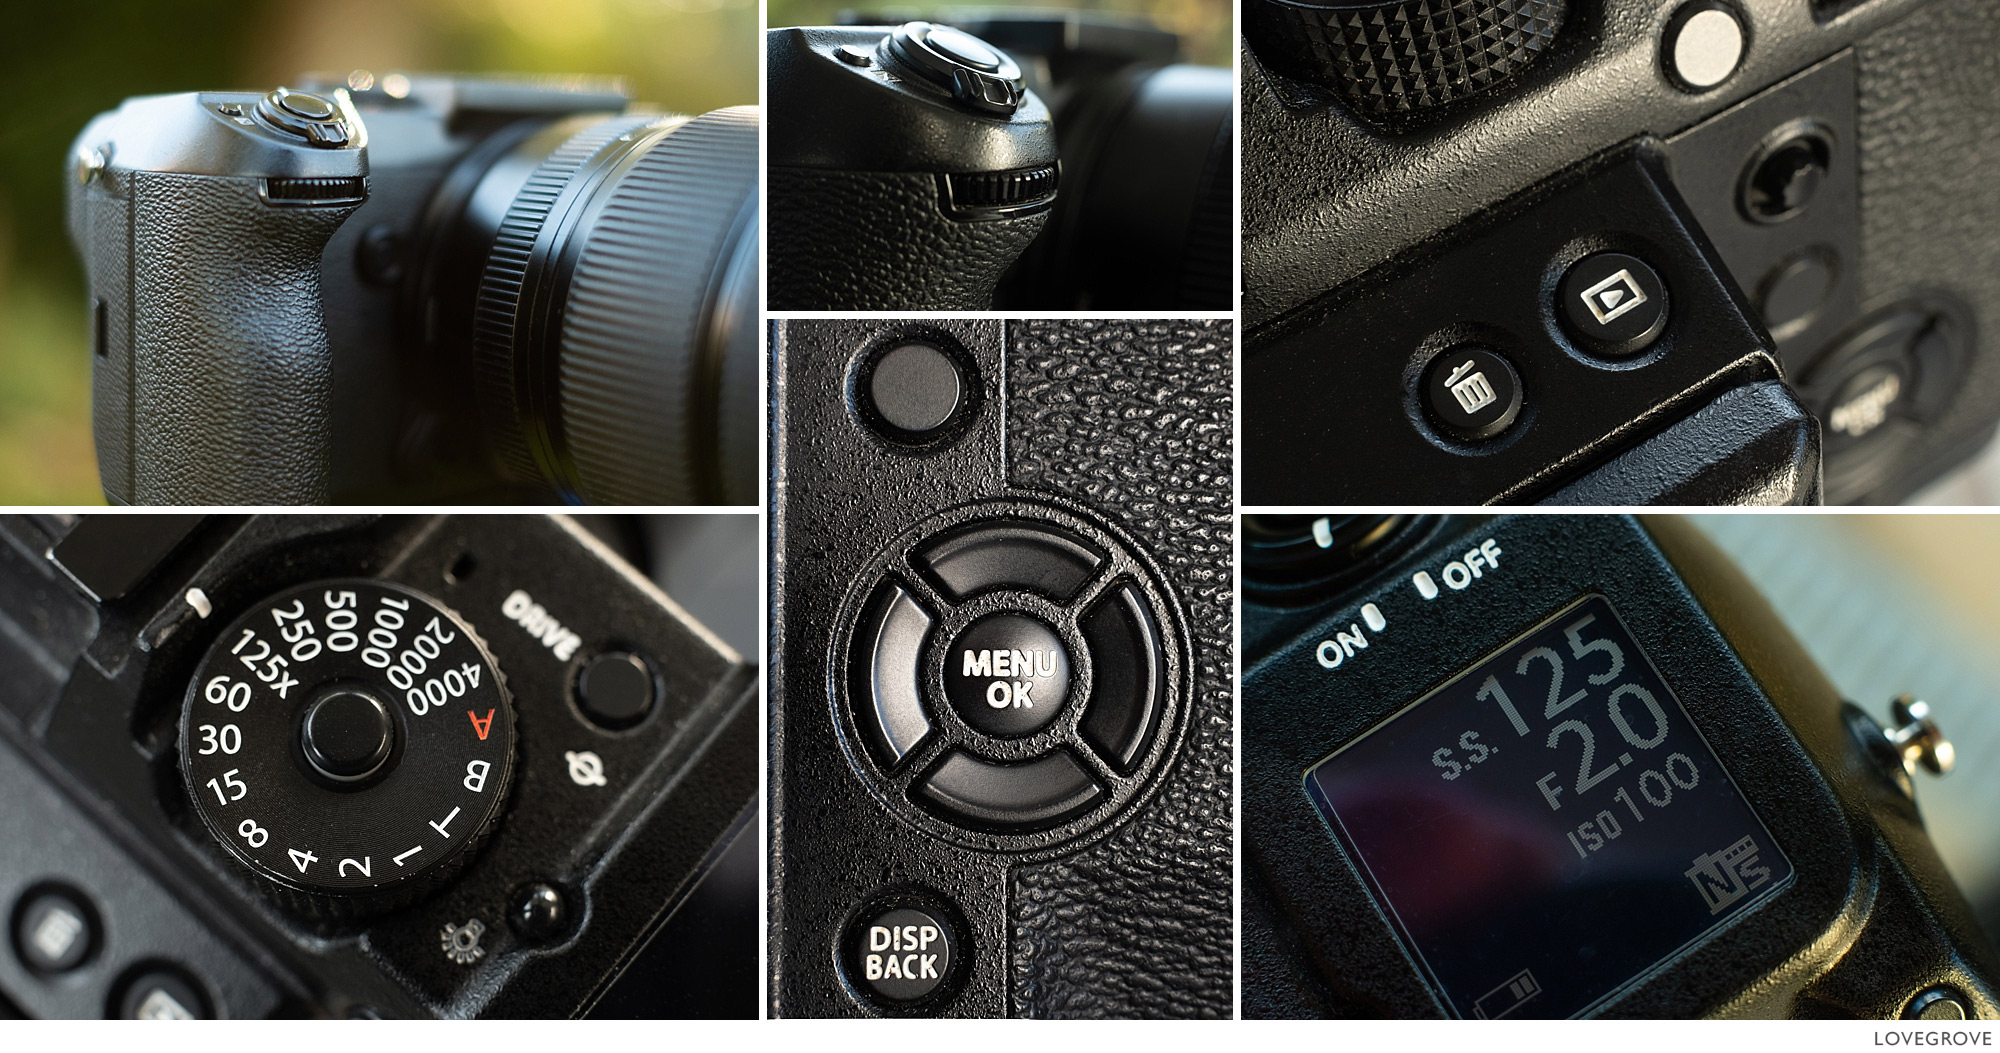 Fujifilm GFX50s and GFX50r settings and 30,000 frame review